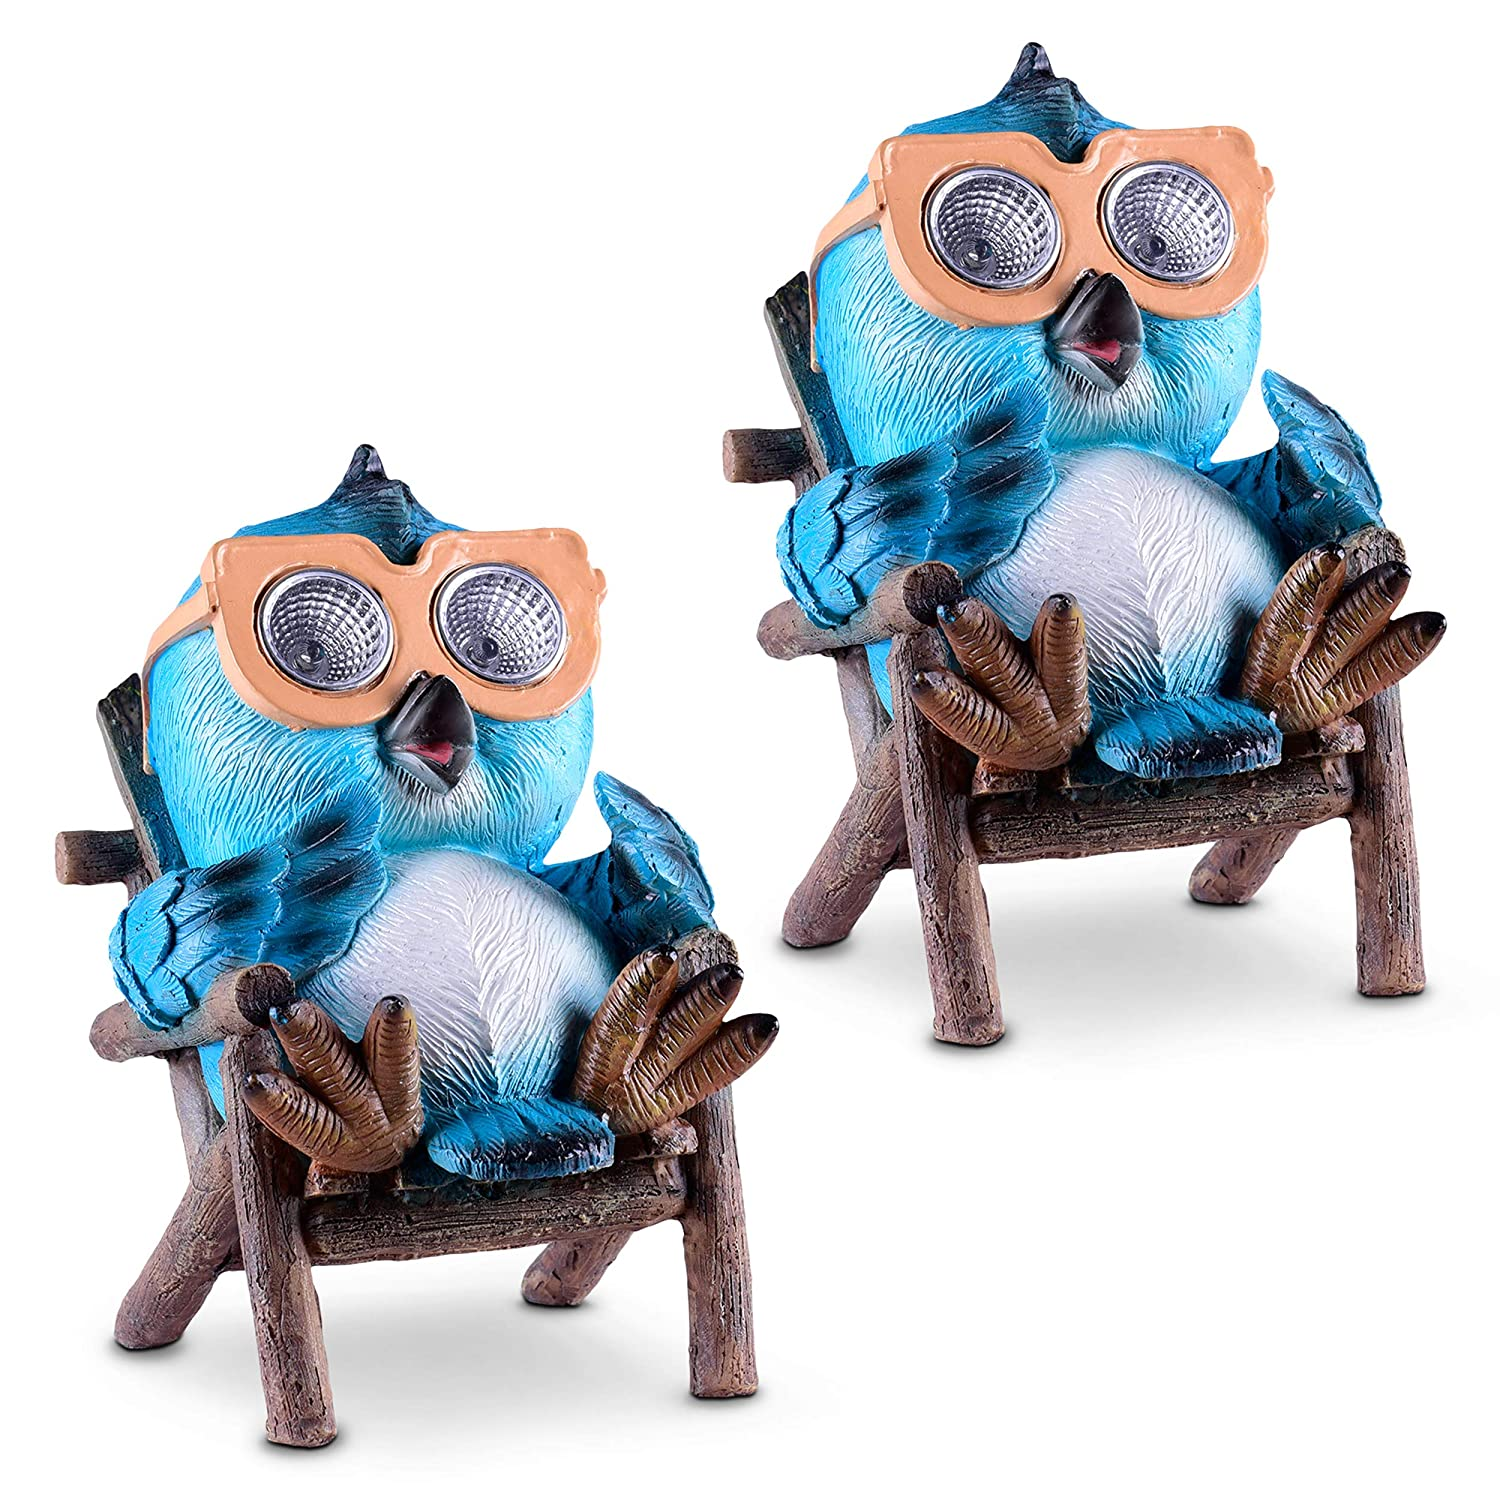 Blue - 2 Pack Light Up Decorative Statue Accents for Yard Lawn Weather Resistant Outdoor LED Decor Figure Great Housewarming Gift Idea Owl Solar Garden Decorations Figurine Patio or Deck